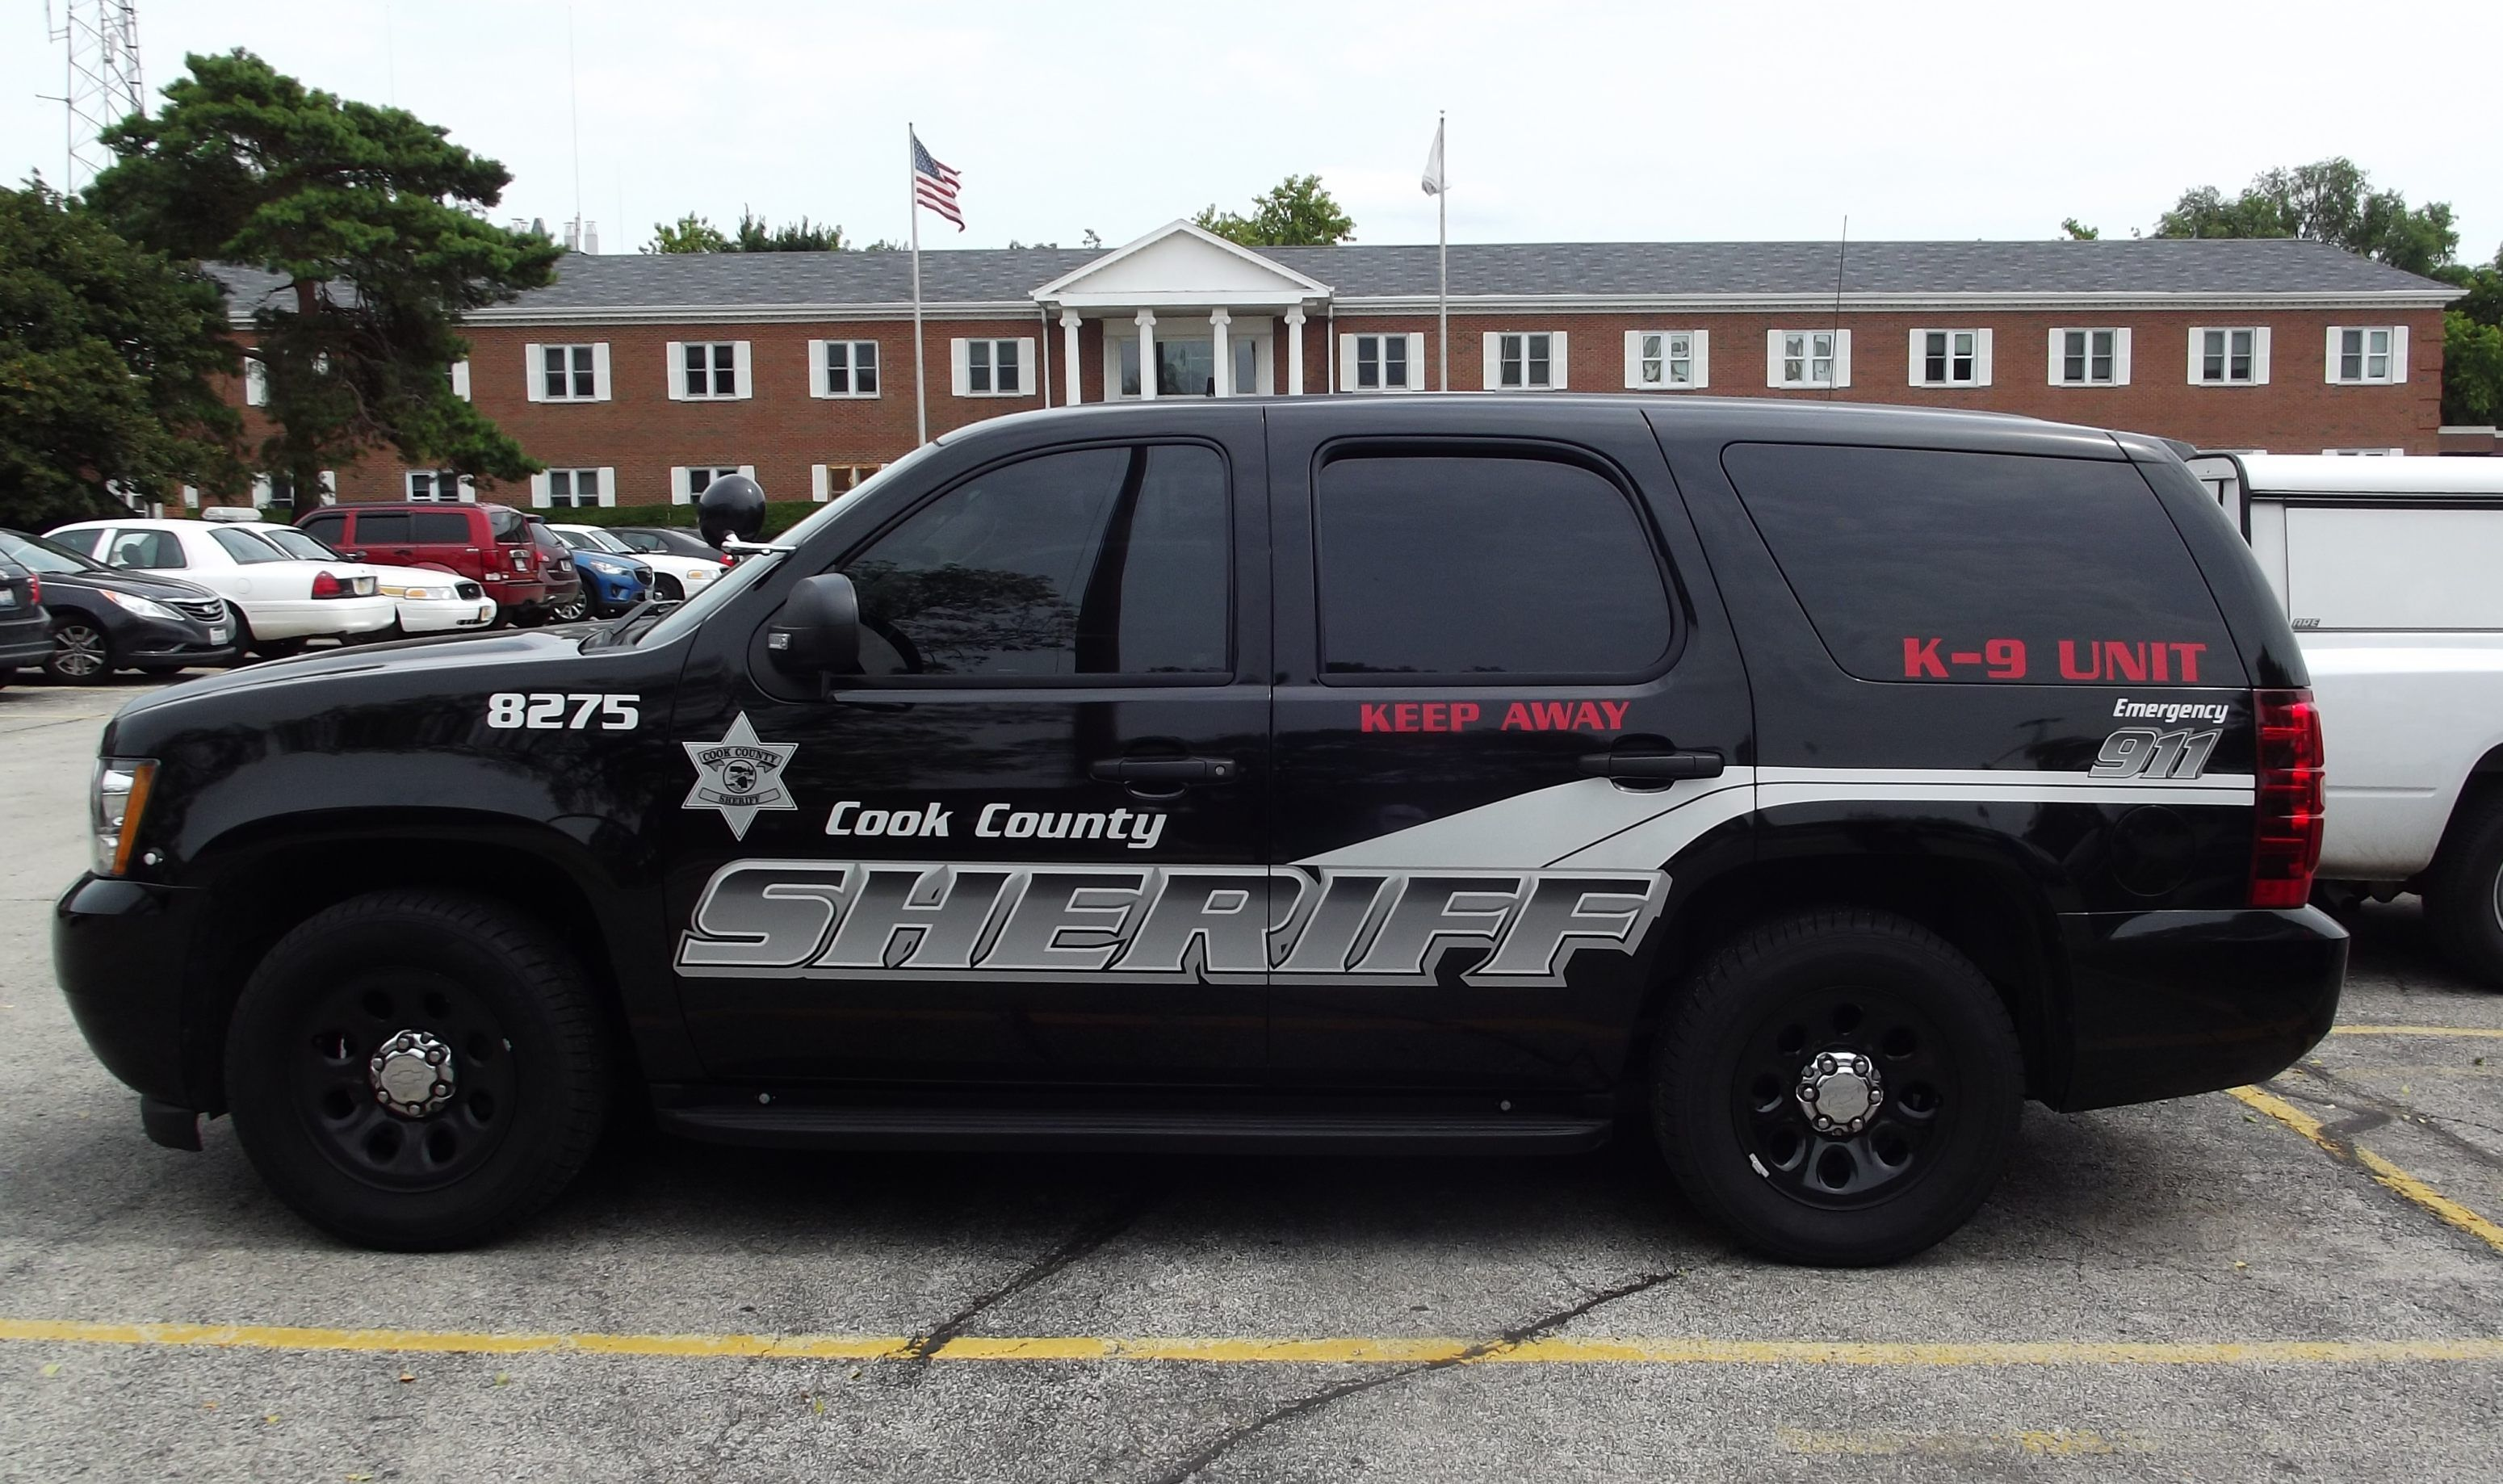 Cook County Sheriff K 9 Unit 8275 Chevy Tahoe Slicktop Police Truck Police Cars Police Car Pictures